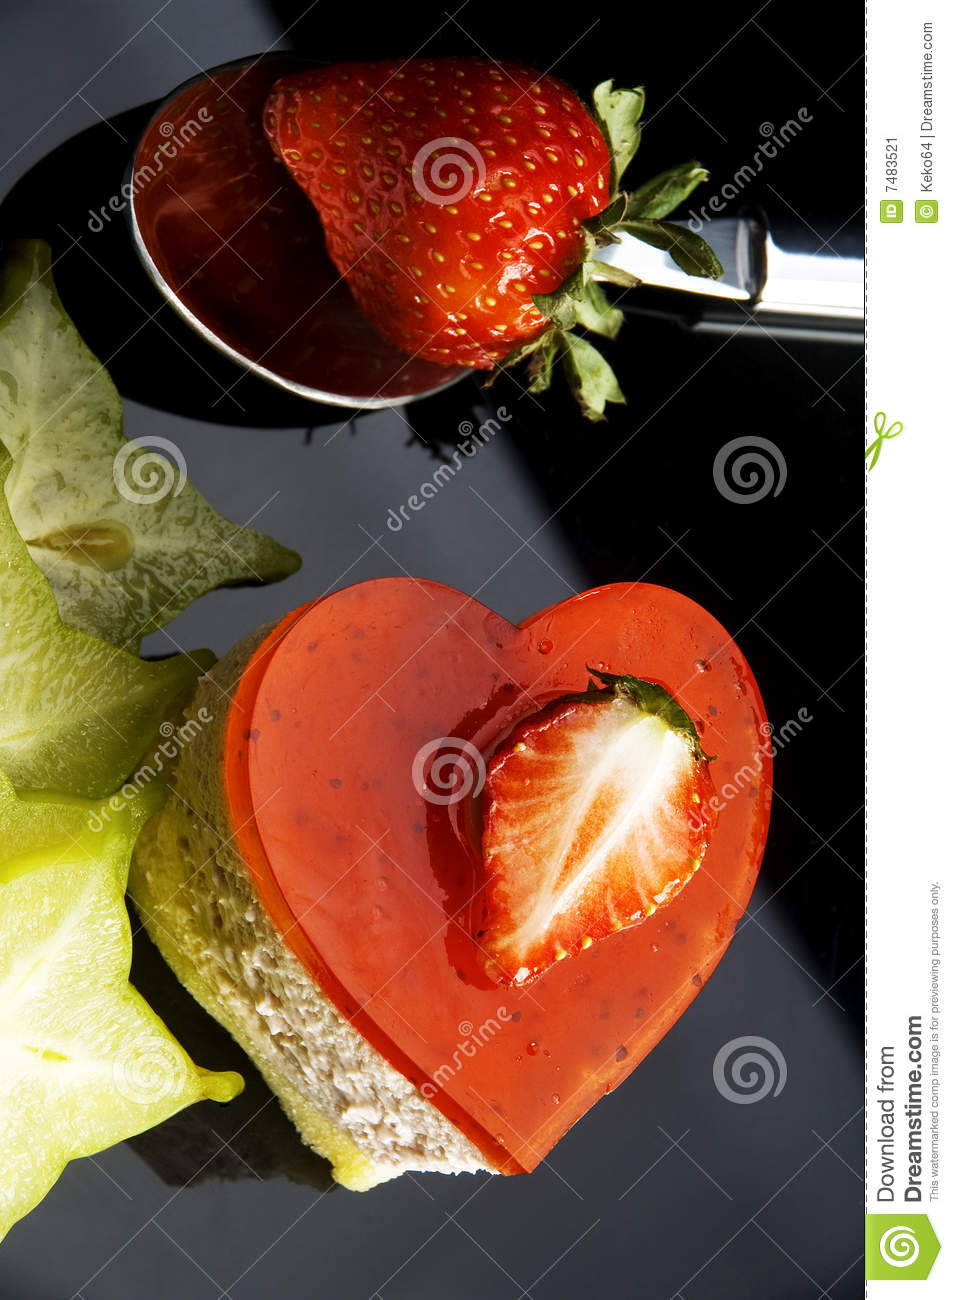 Fruit Shaped Cake Decoration : Heart Cake Stock Image - Image: 7483521